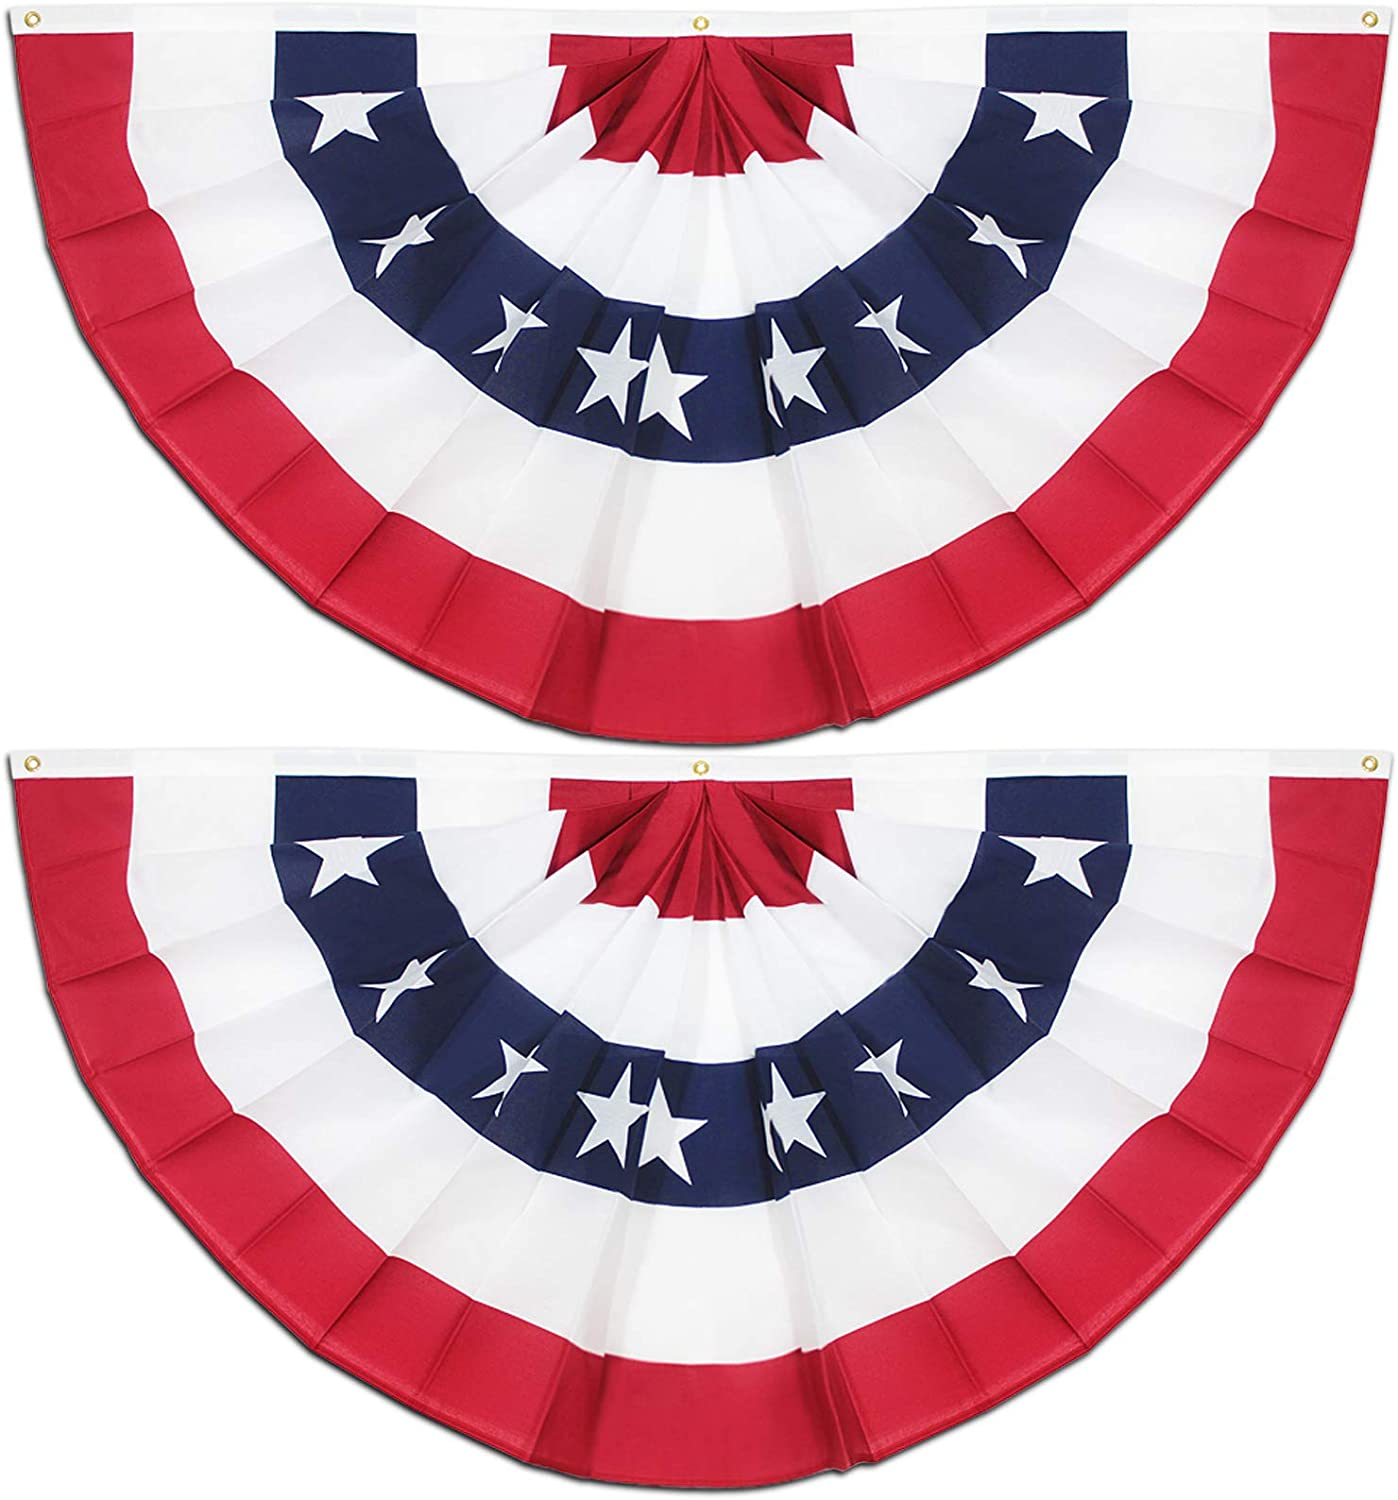 Anley USA Pleated Fan Flag, 1.5x3 ft American US Bunting Flag Patriotic Stars & Stripes - Sharp Color and Fade Resistant - United States 1.5 x 3 Ft Half Fan Banner(2 Pack)